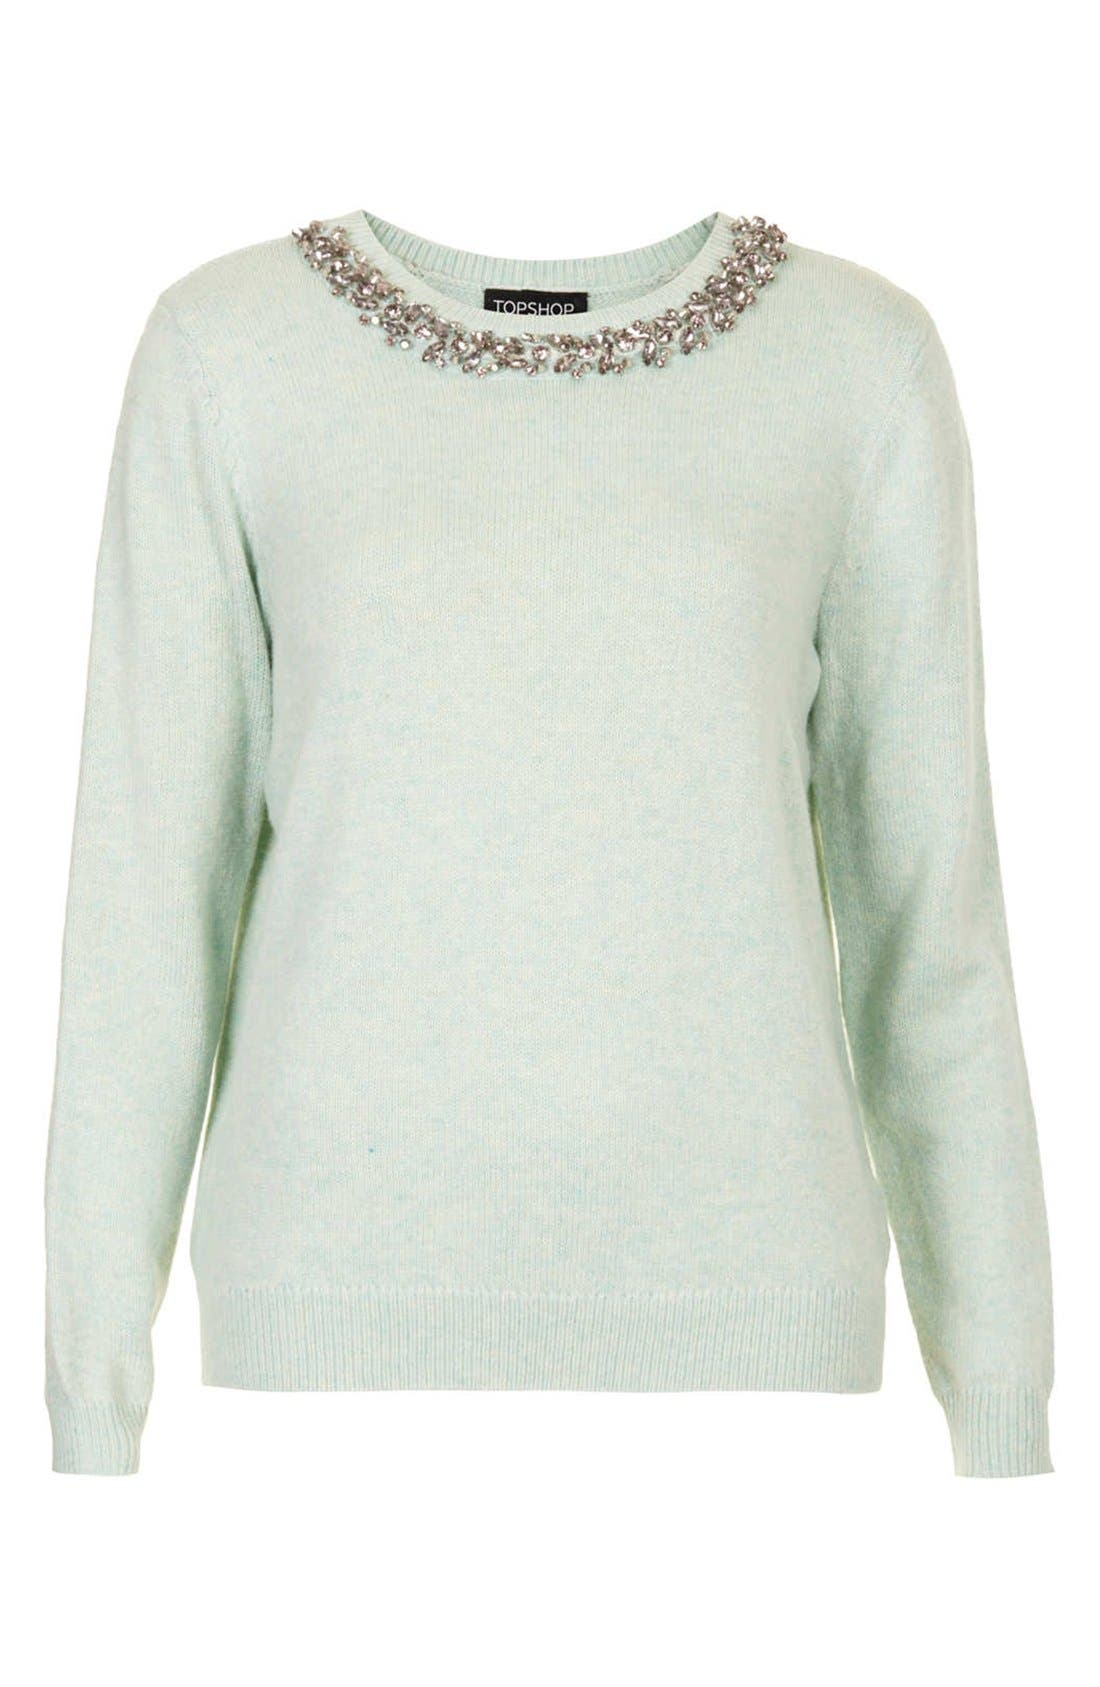 Alternate Image 3  - Topshop Embellished Neckline Sweater